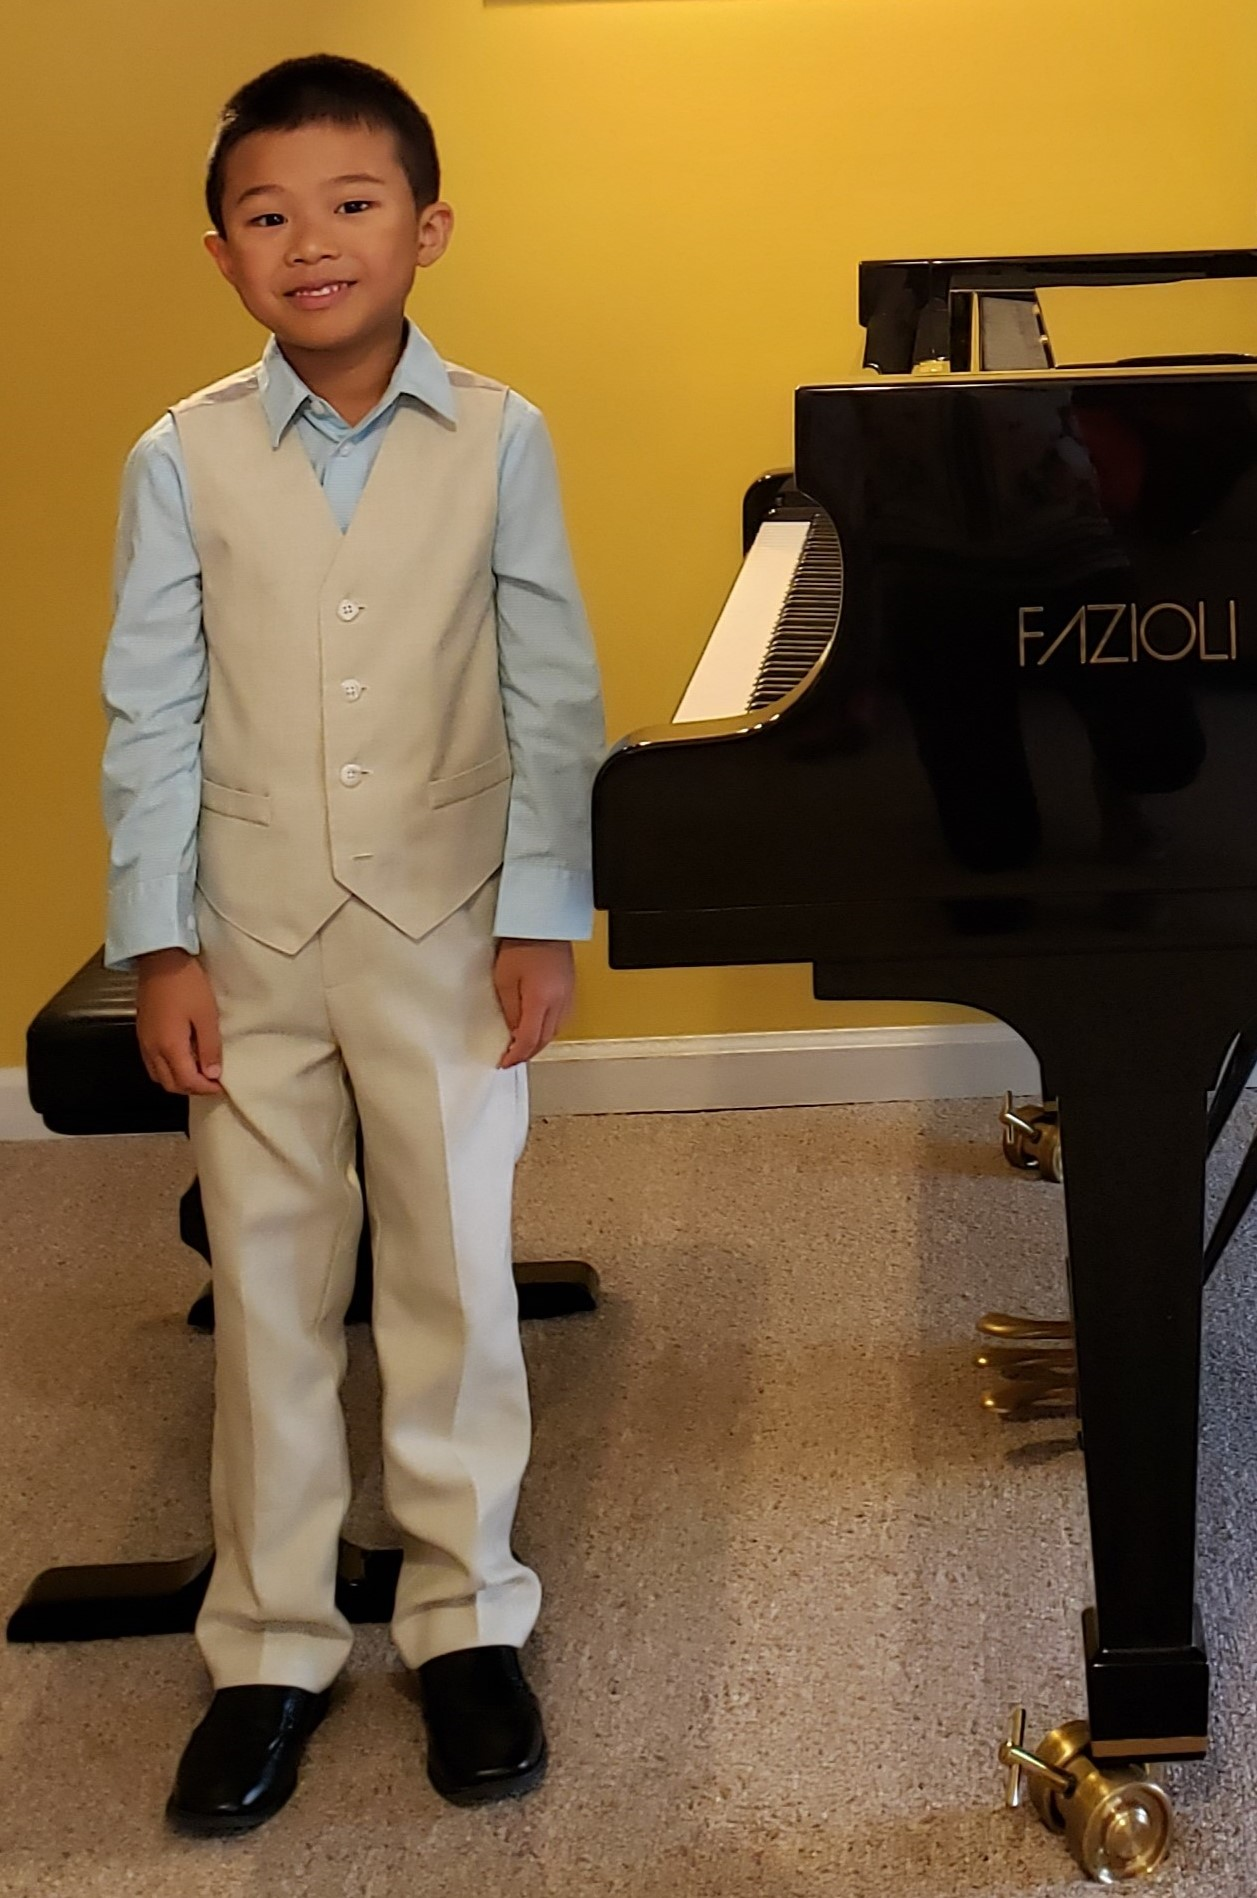 DAMON CHAN WON 3rd PRIZE AT THE AMERICAN PROTEGE INTERNATIONAL PIANO & STRINGS COMPETITION 2020. The Winners' Recital will be held in May 2020 at Weill Recital Hall at Carnegie Hall in New York!